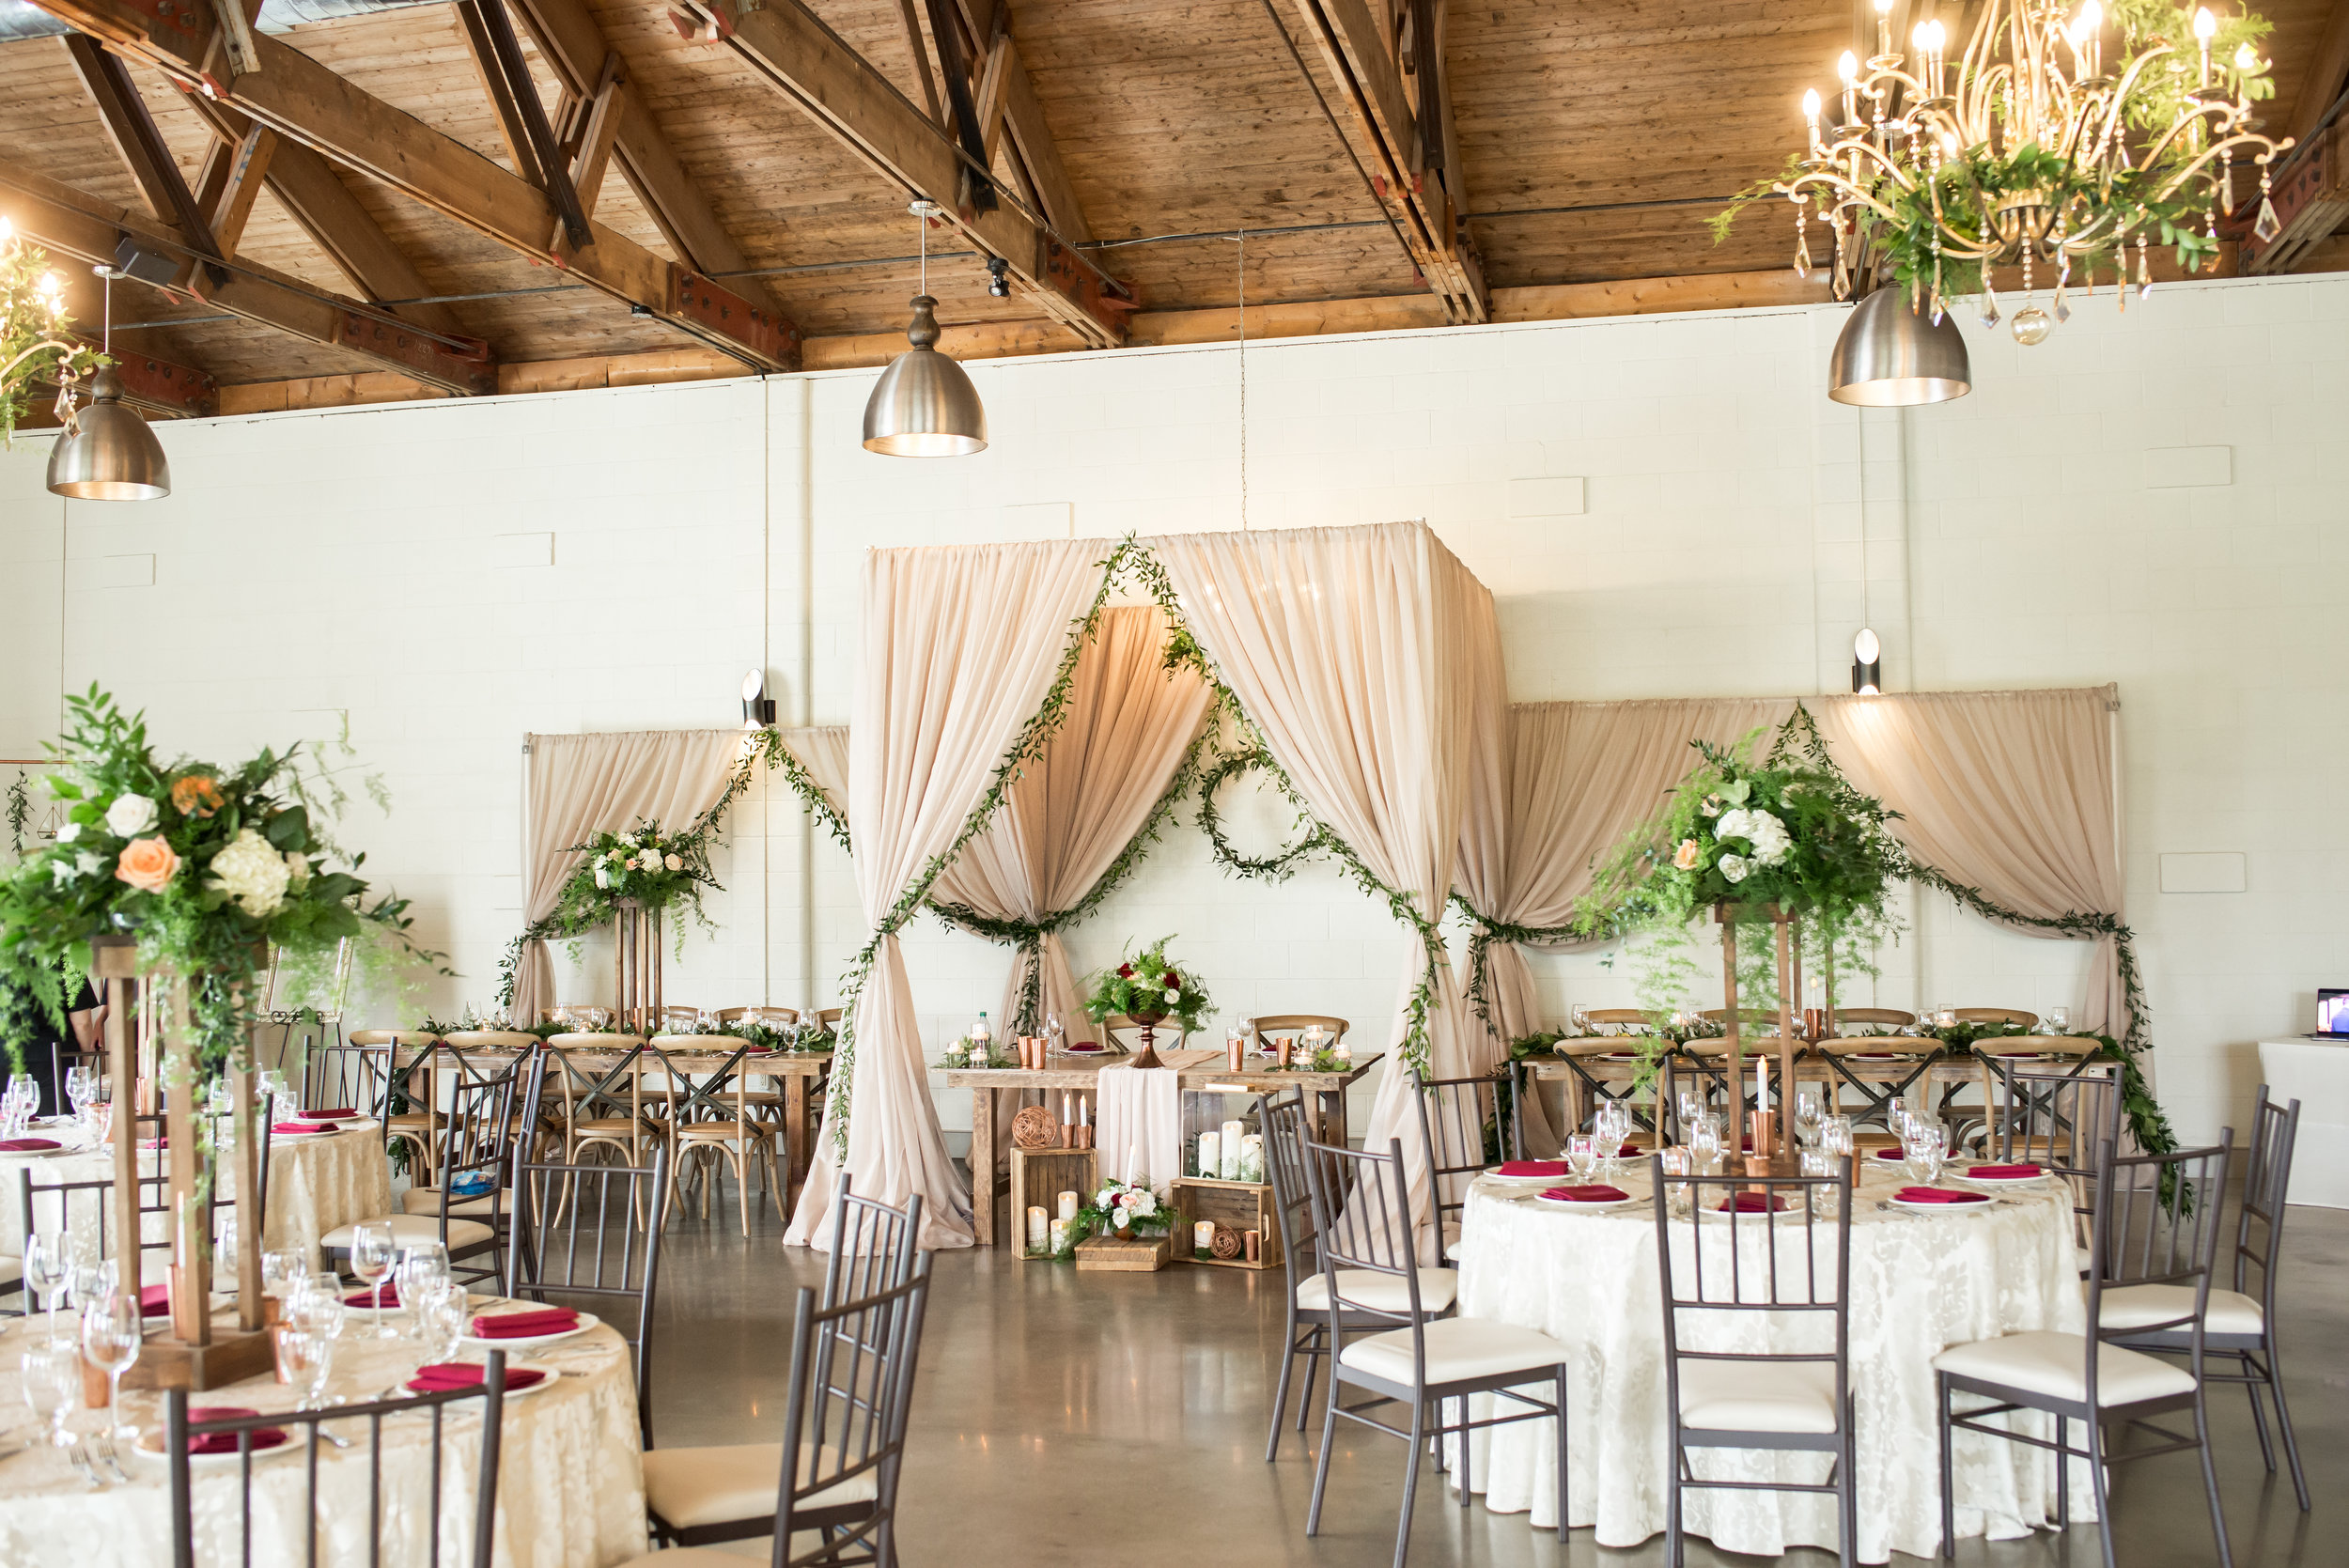 Inspired by a secret garden theme, the Hideaway design included details that were at the same time polished and undone. A stunning draped chuppah, greenery accents and bursts of floral everywhere, and wood tables and chairs elevated the space perfectly.